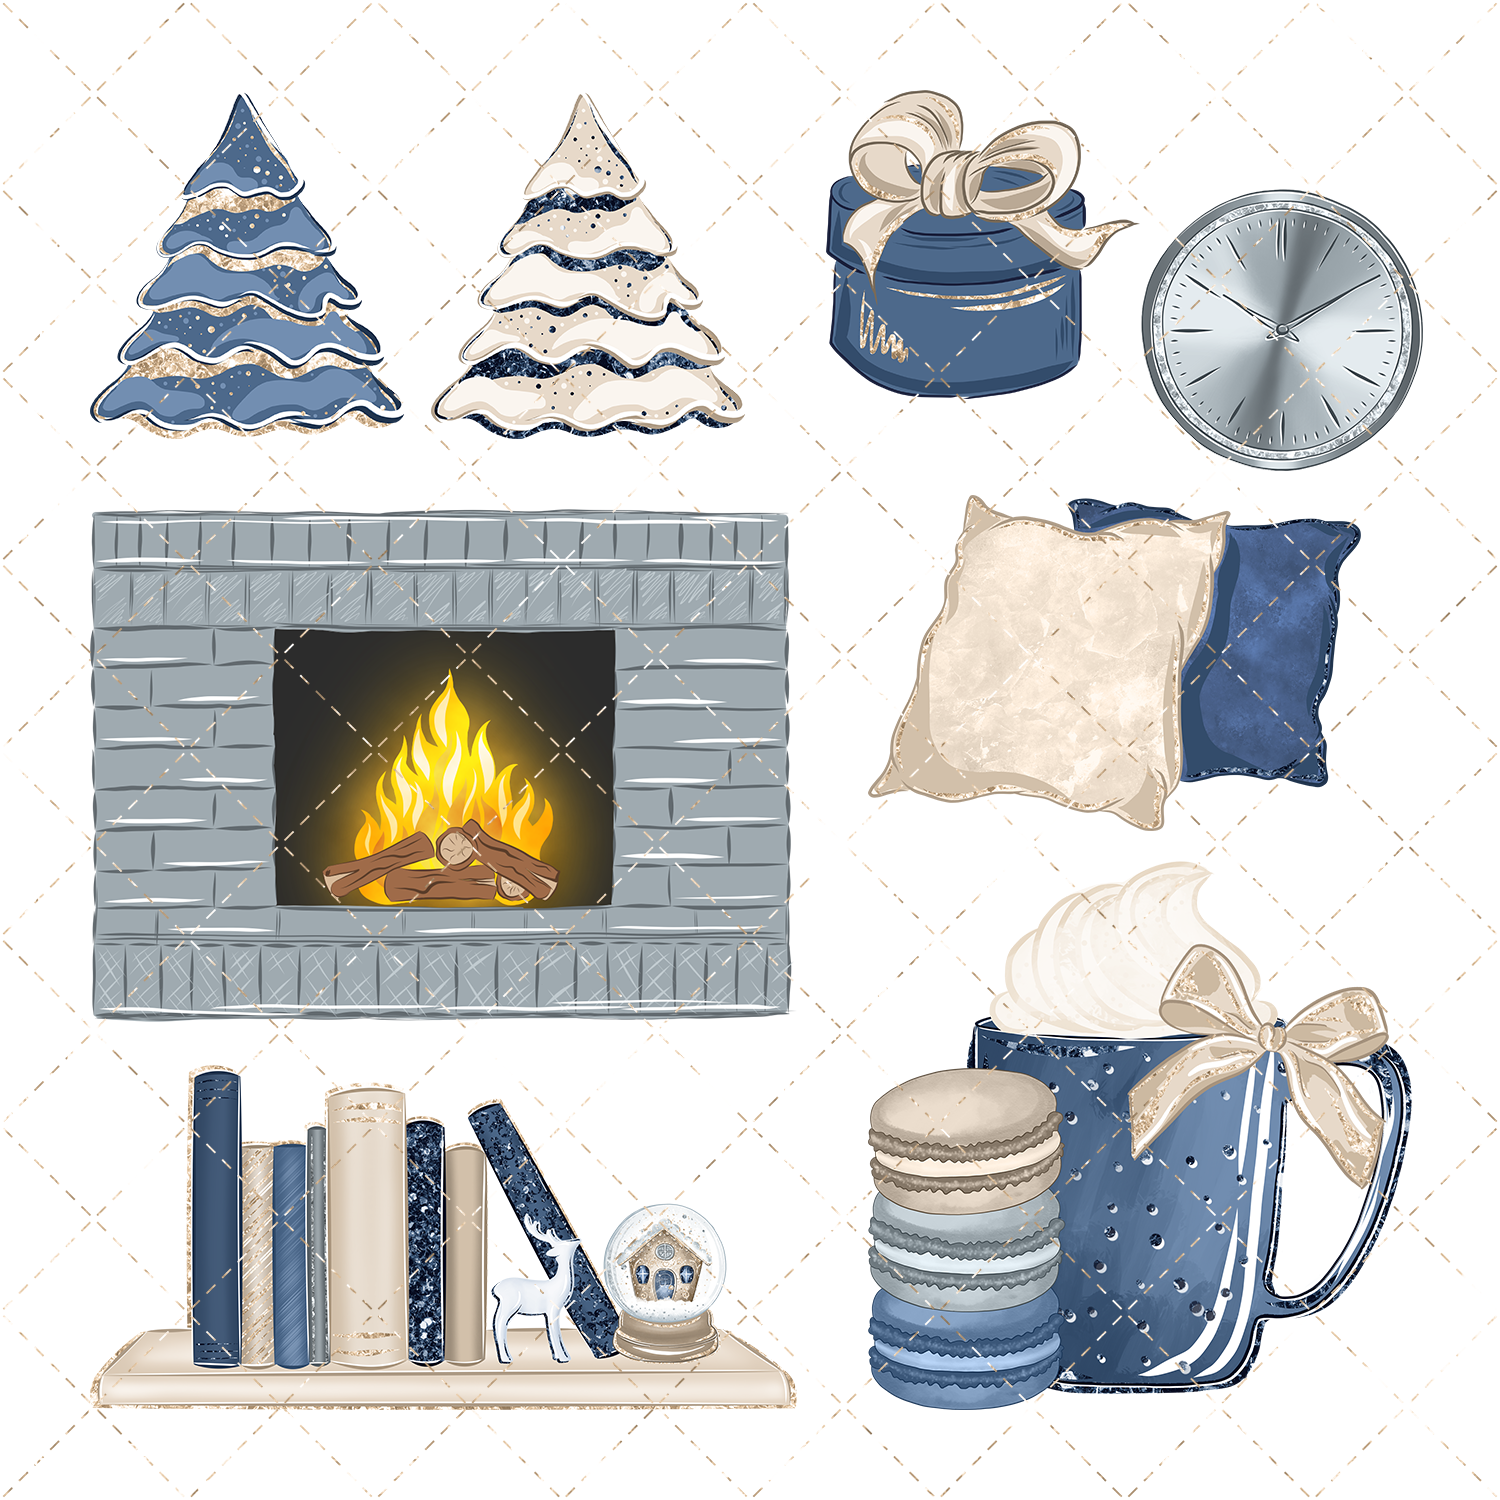 Winter clipart campfire. Homey by phantasiadesign thehungryjpeg